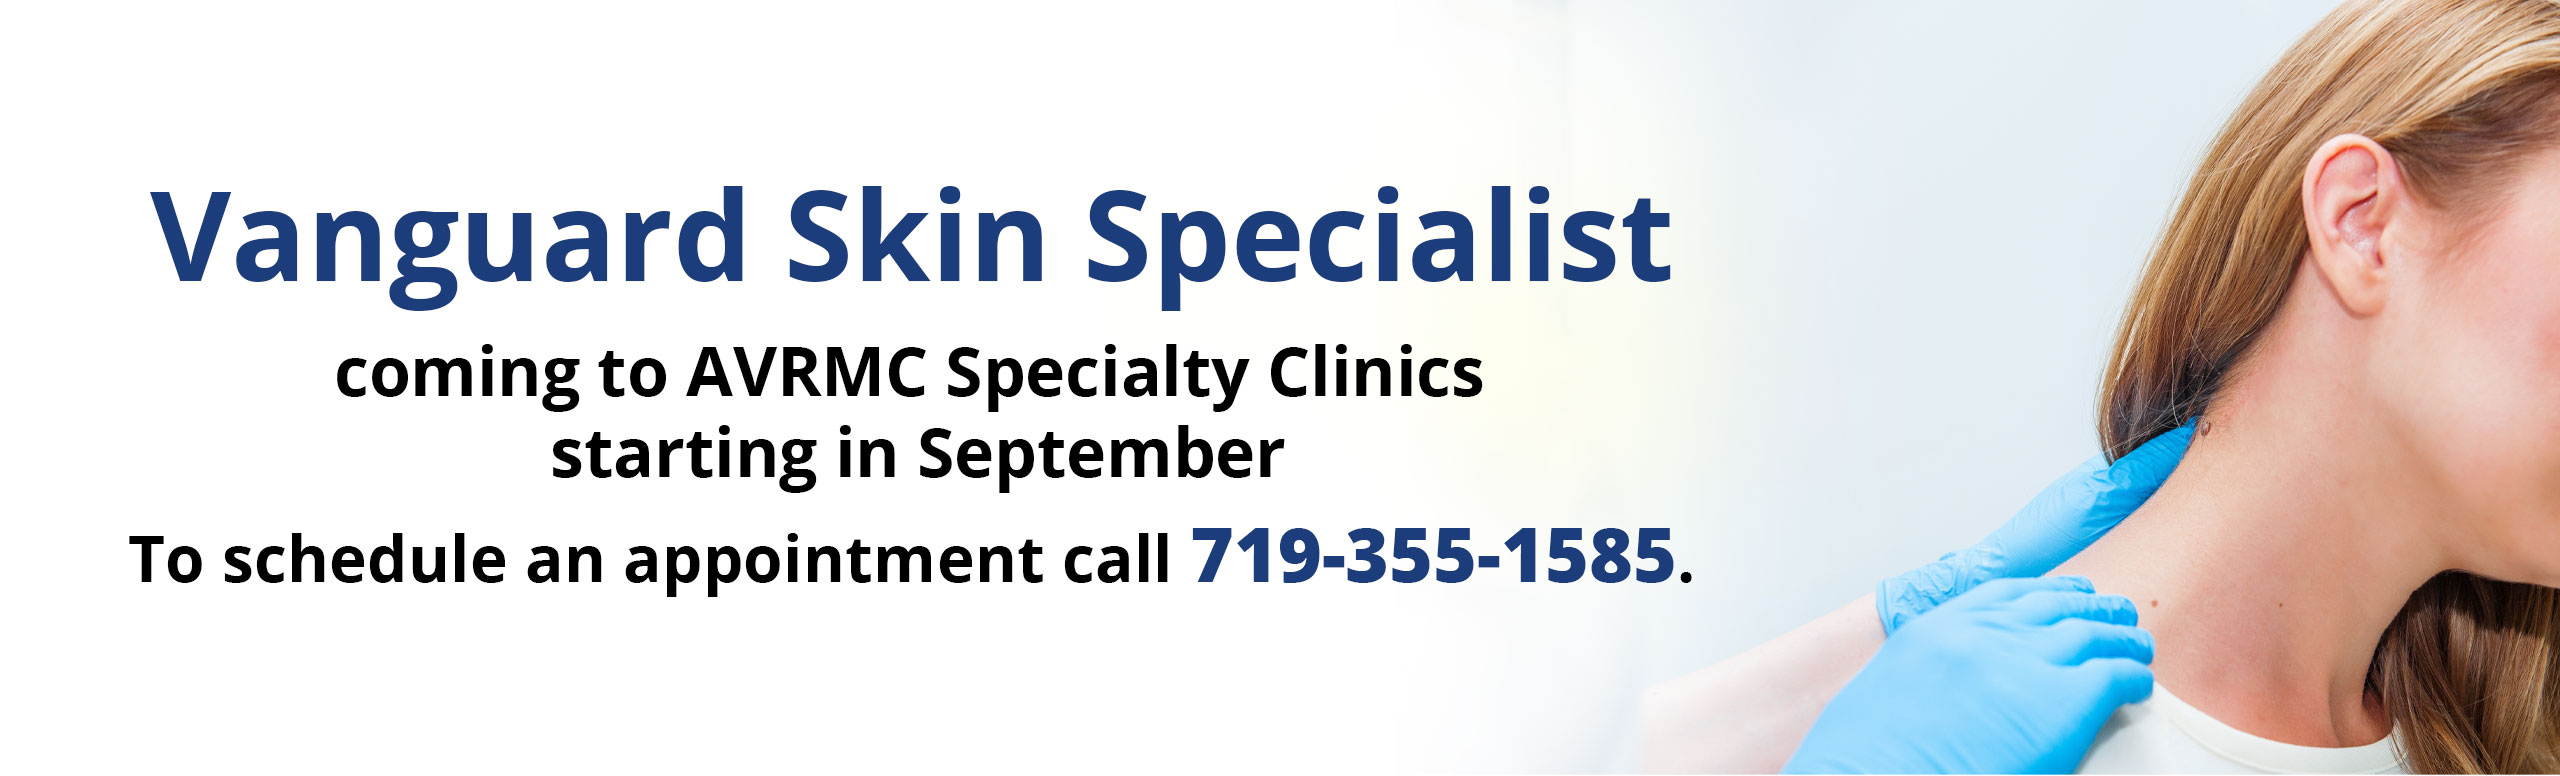 Vanguard Skin Specialist   coming to AVRMC Specialty Clinics  starting in September  To schedule an appointment call 719-355-1585.